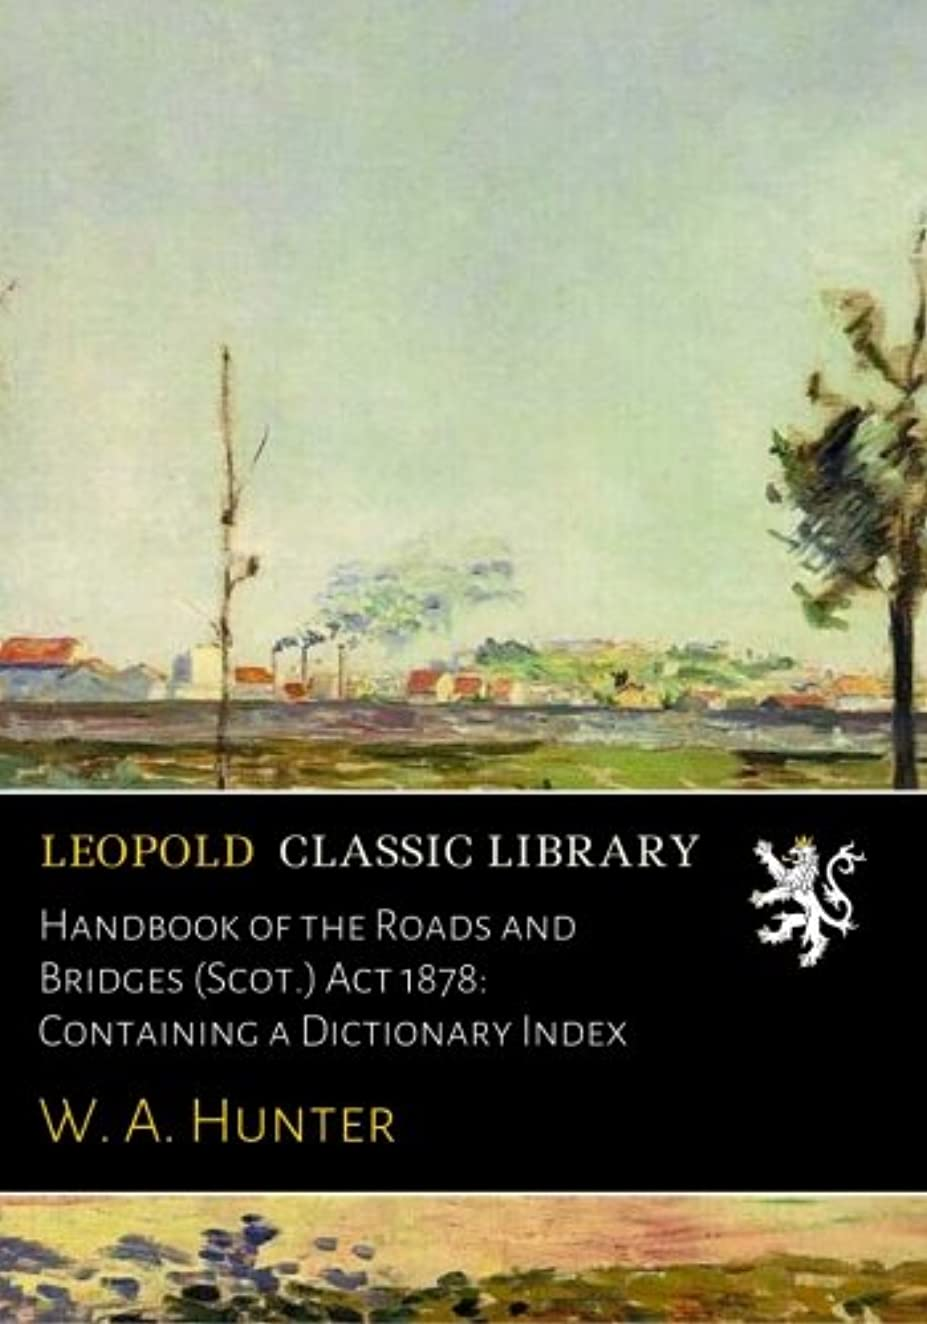 Handbook of the Roads and Bridges (Scot.) Act 1878: Containing a Dictionary Index